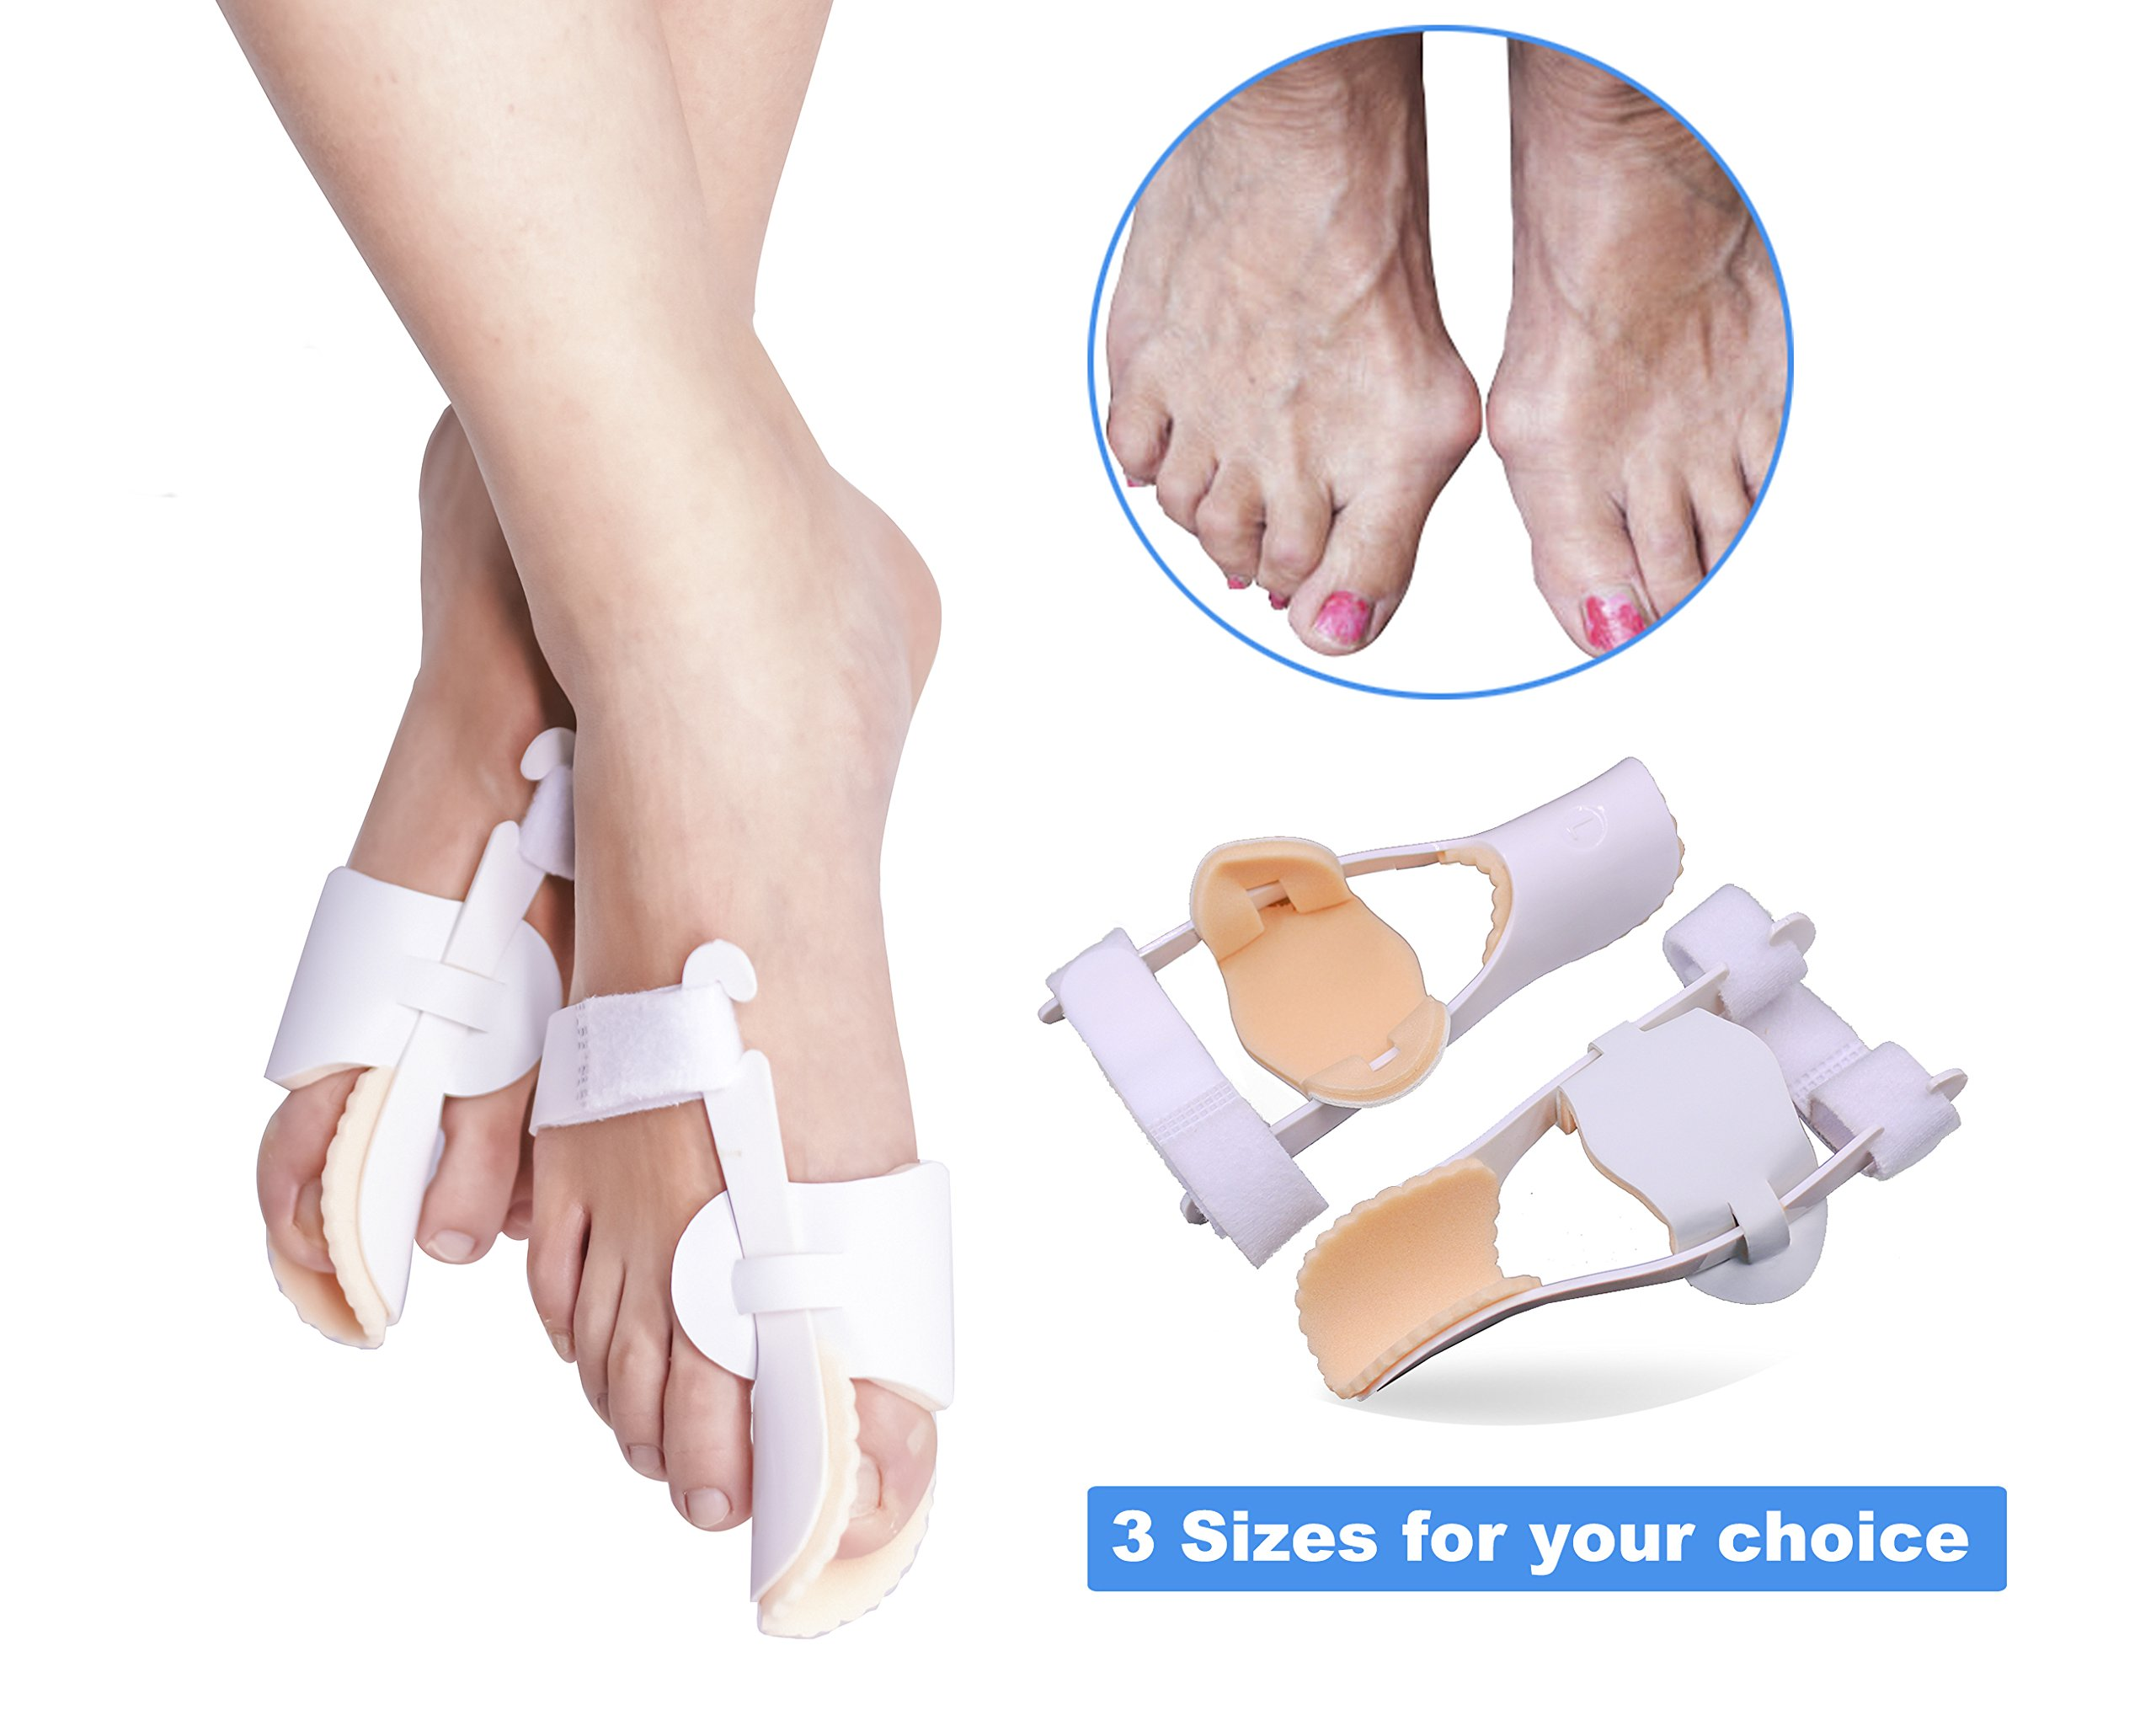 3 Sizes Bunion Corrector, Hallux Valgus Bunion Brace Splint Pads for Foot Bunion Relieve Relief Aid Surgery Treatment Toe Separators Straighteners by ERGOfoot [M]